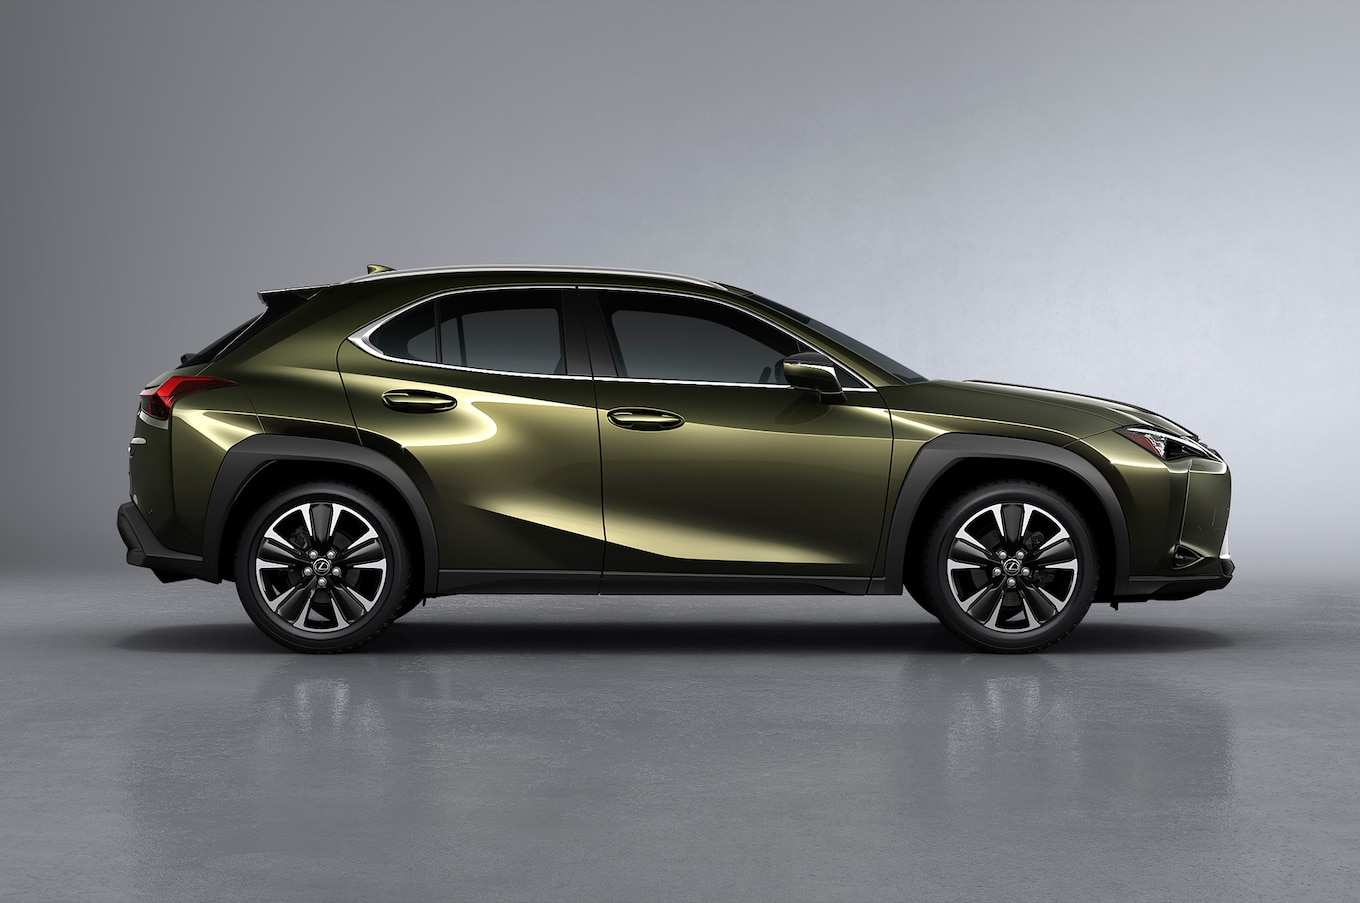 52 Gallery of 2019 Lexus Ux200 Reviews for 2019 Lexus Ux200